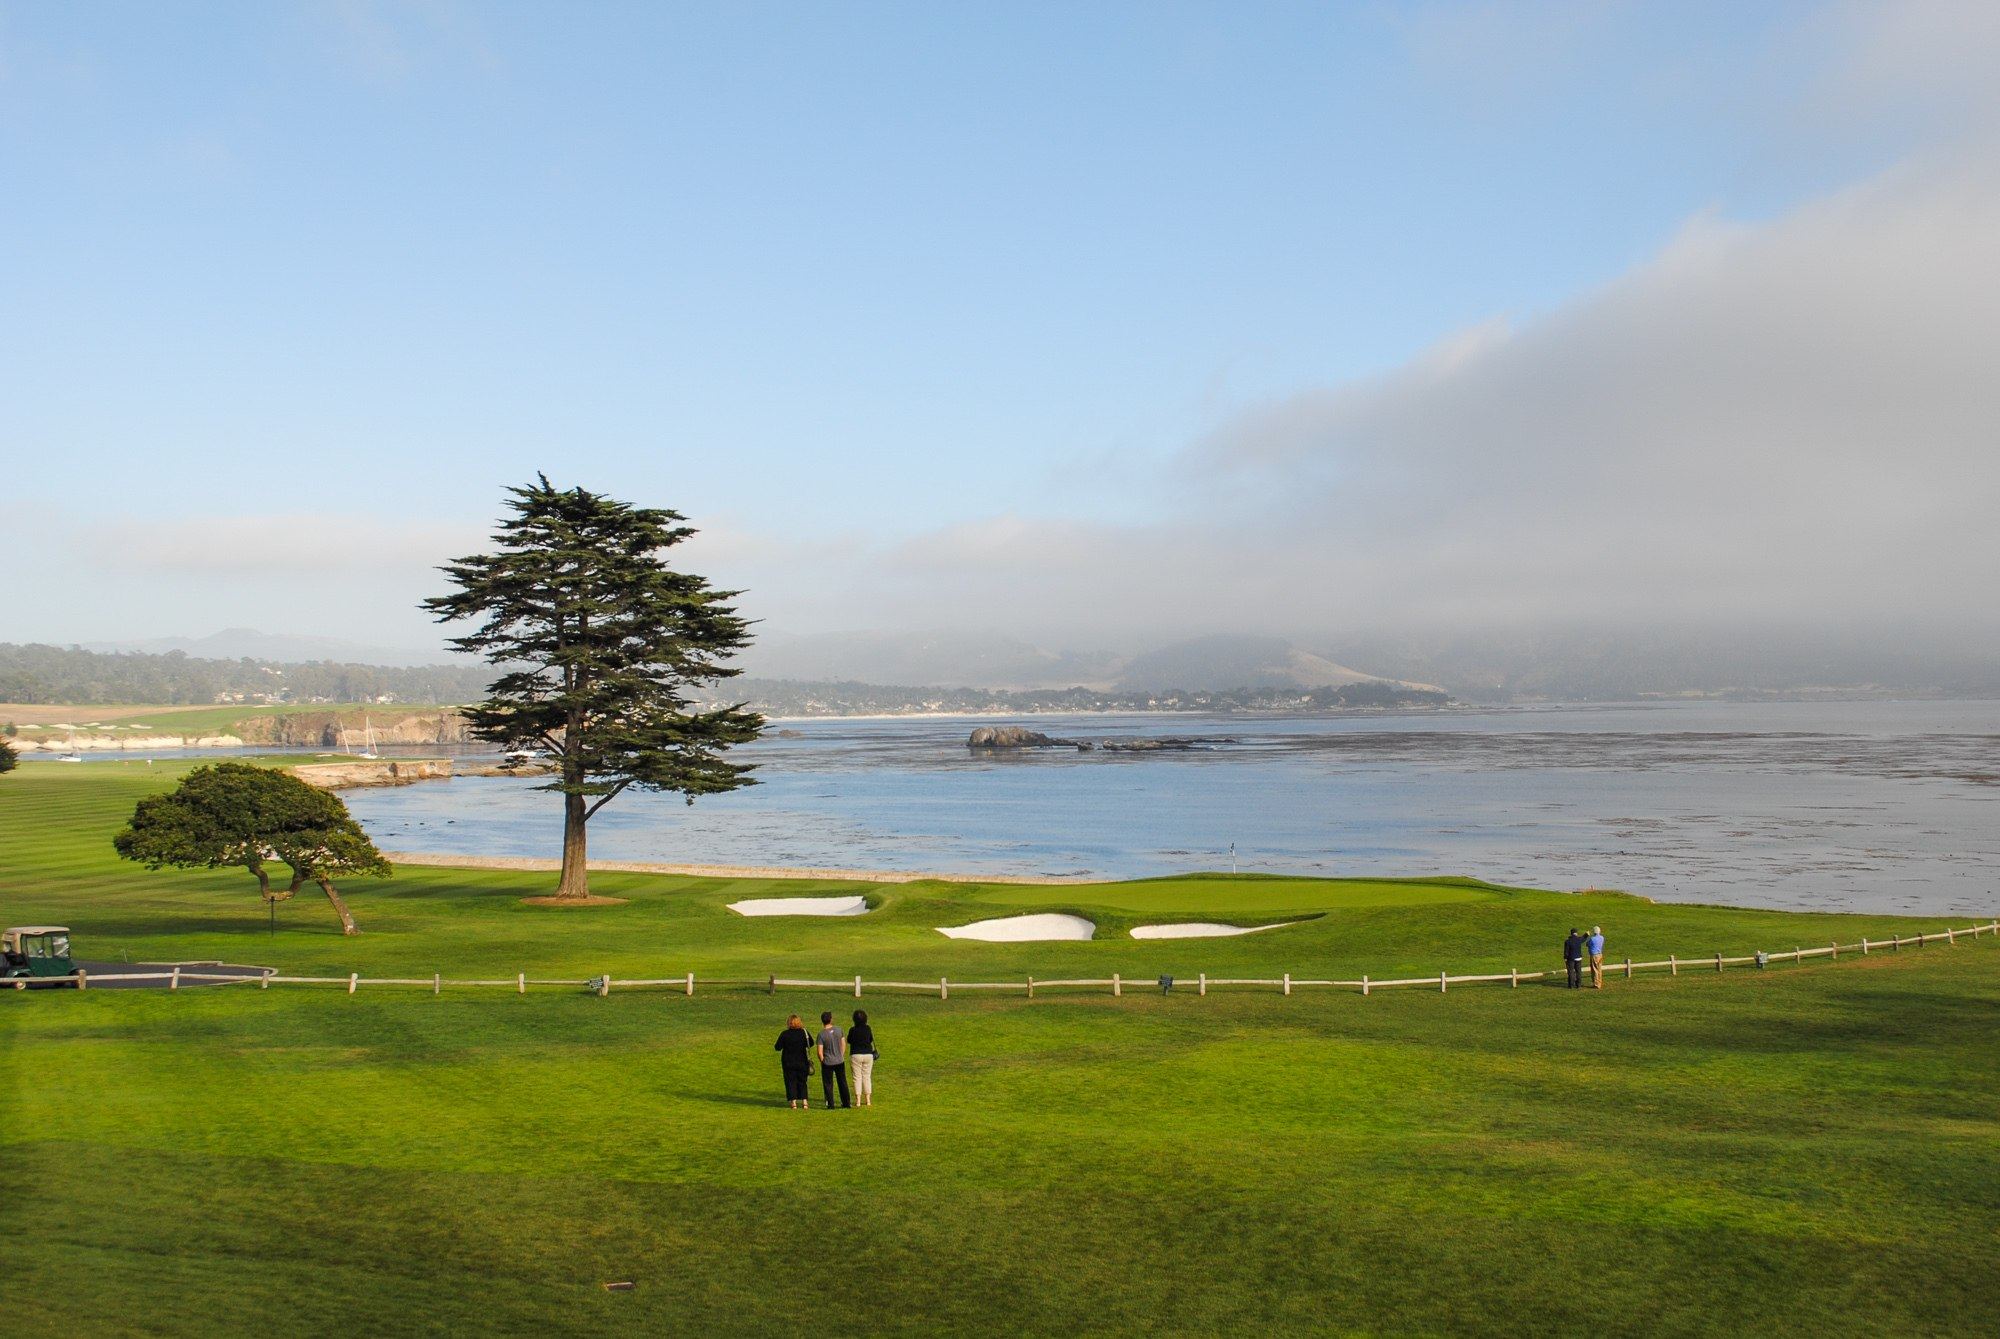 Just a sliver of the sweeping view at Pebble Beach Golf Club